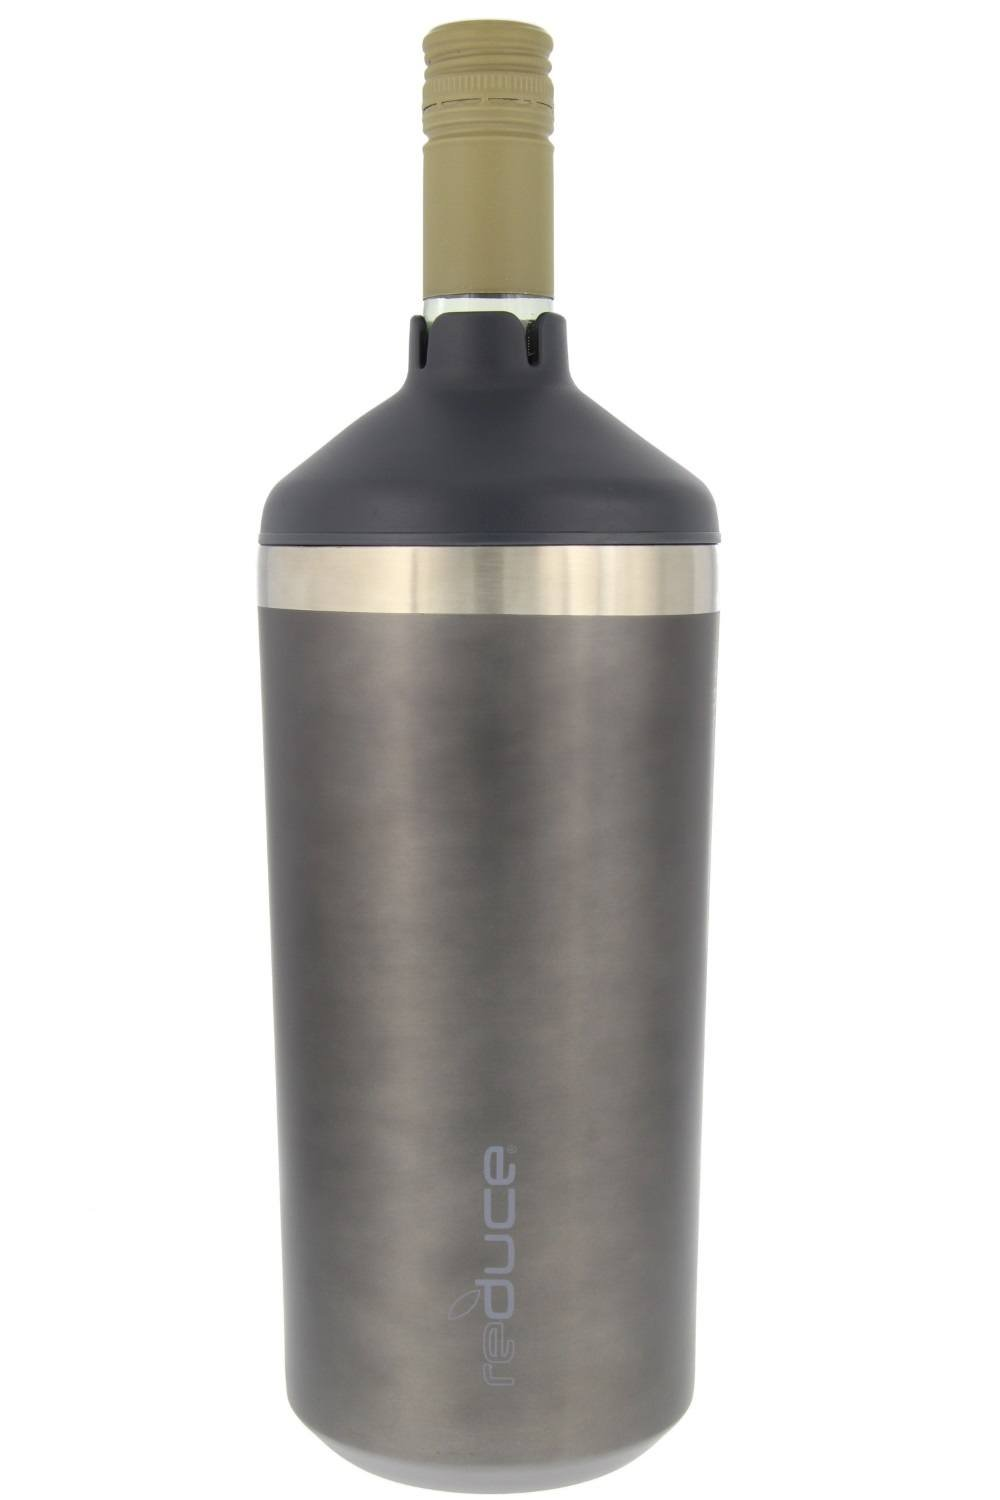 Portable Wine Bottle Cooler by REDUCE-Stainless Steel, Insulated Chiller to Keep Wine at the Perfect Temperature, No Ice Required-Ideal for Outdoor Summer Parties, Fits Most Wine Bottles – Charcoal